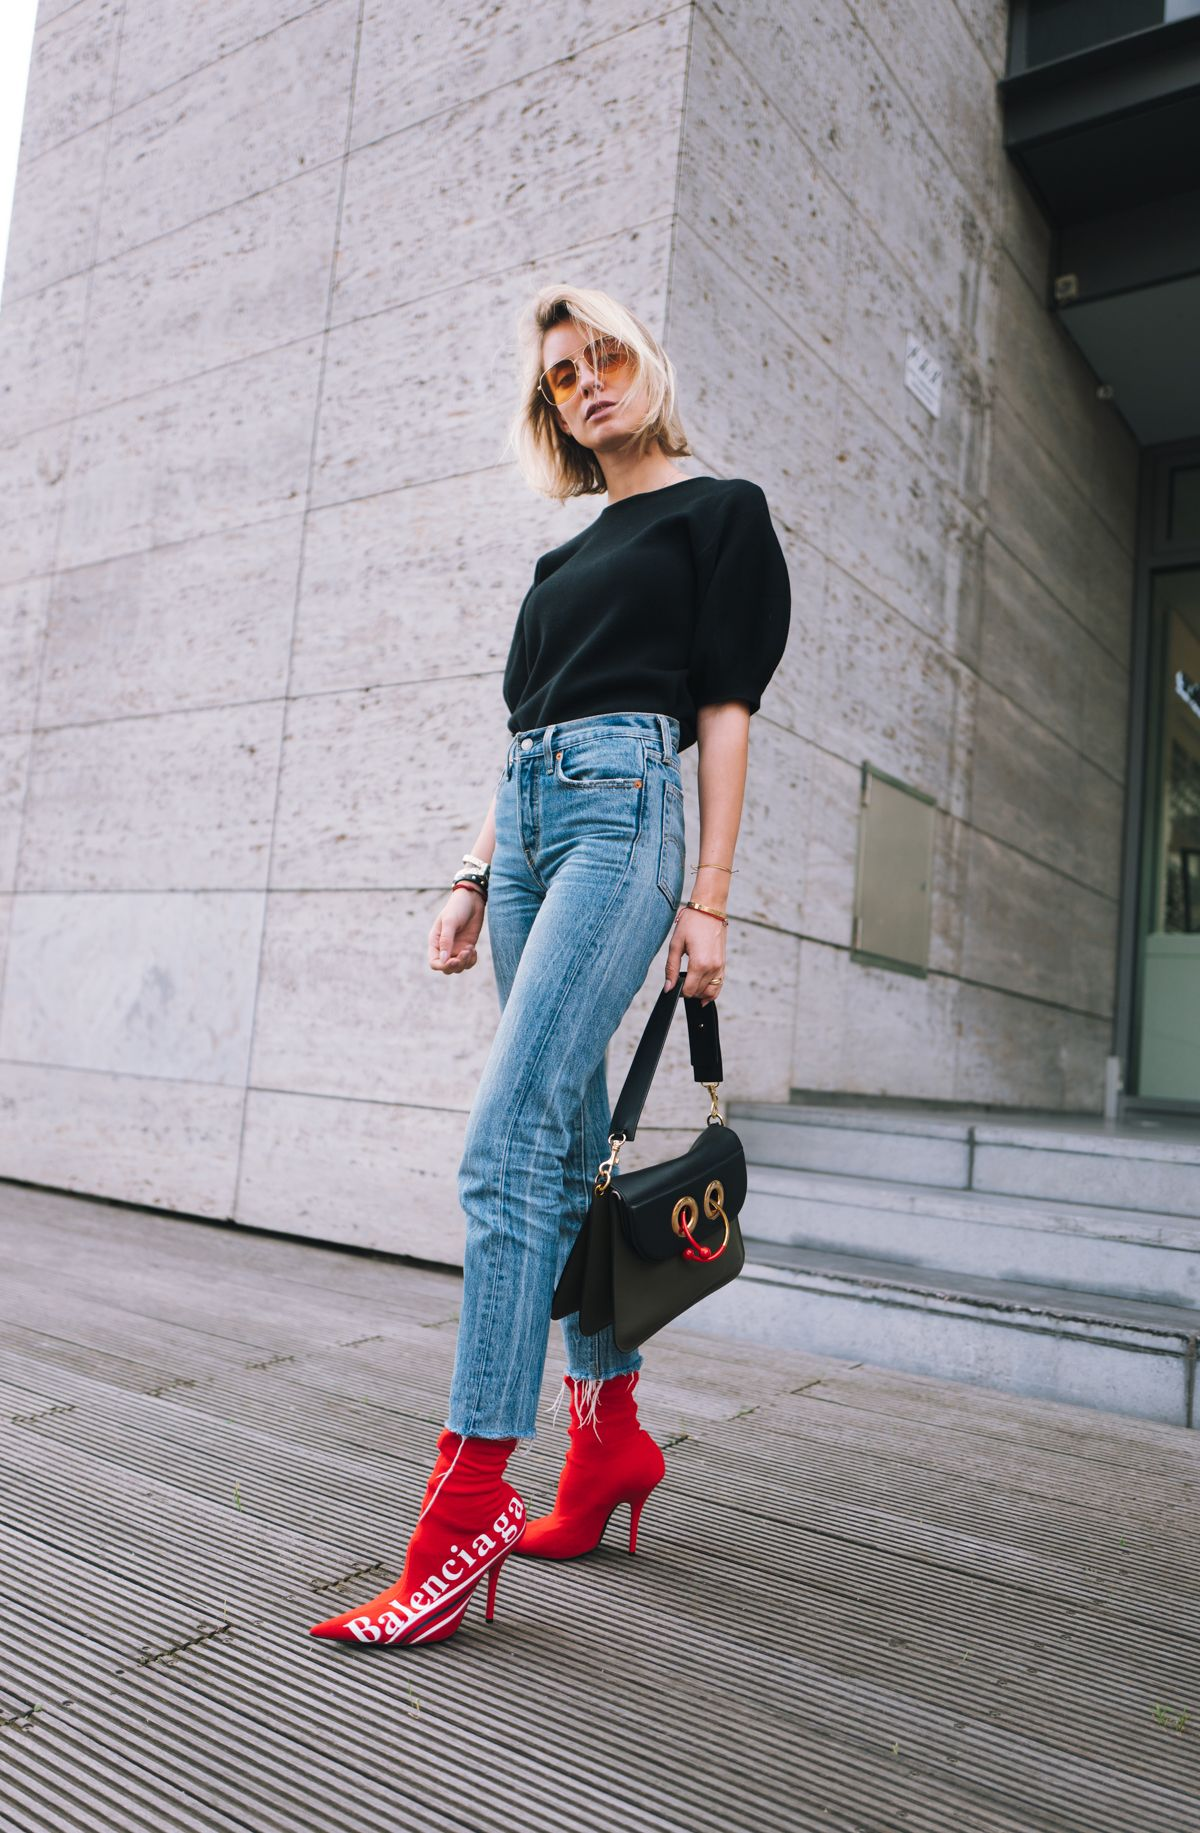 Balenciaga x Colette Knife Boots Outfit